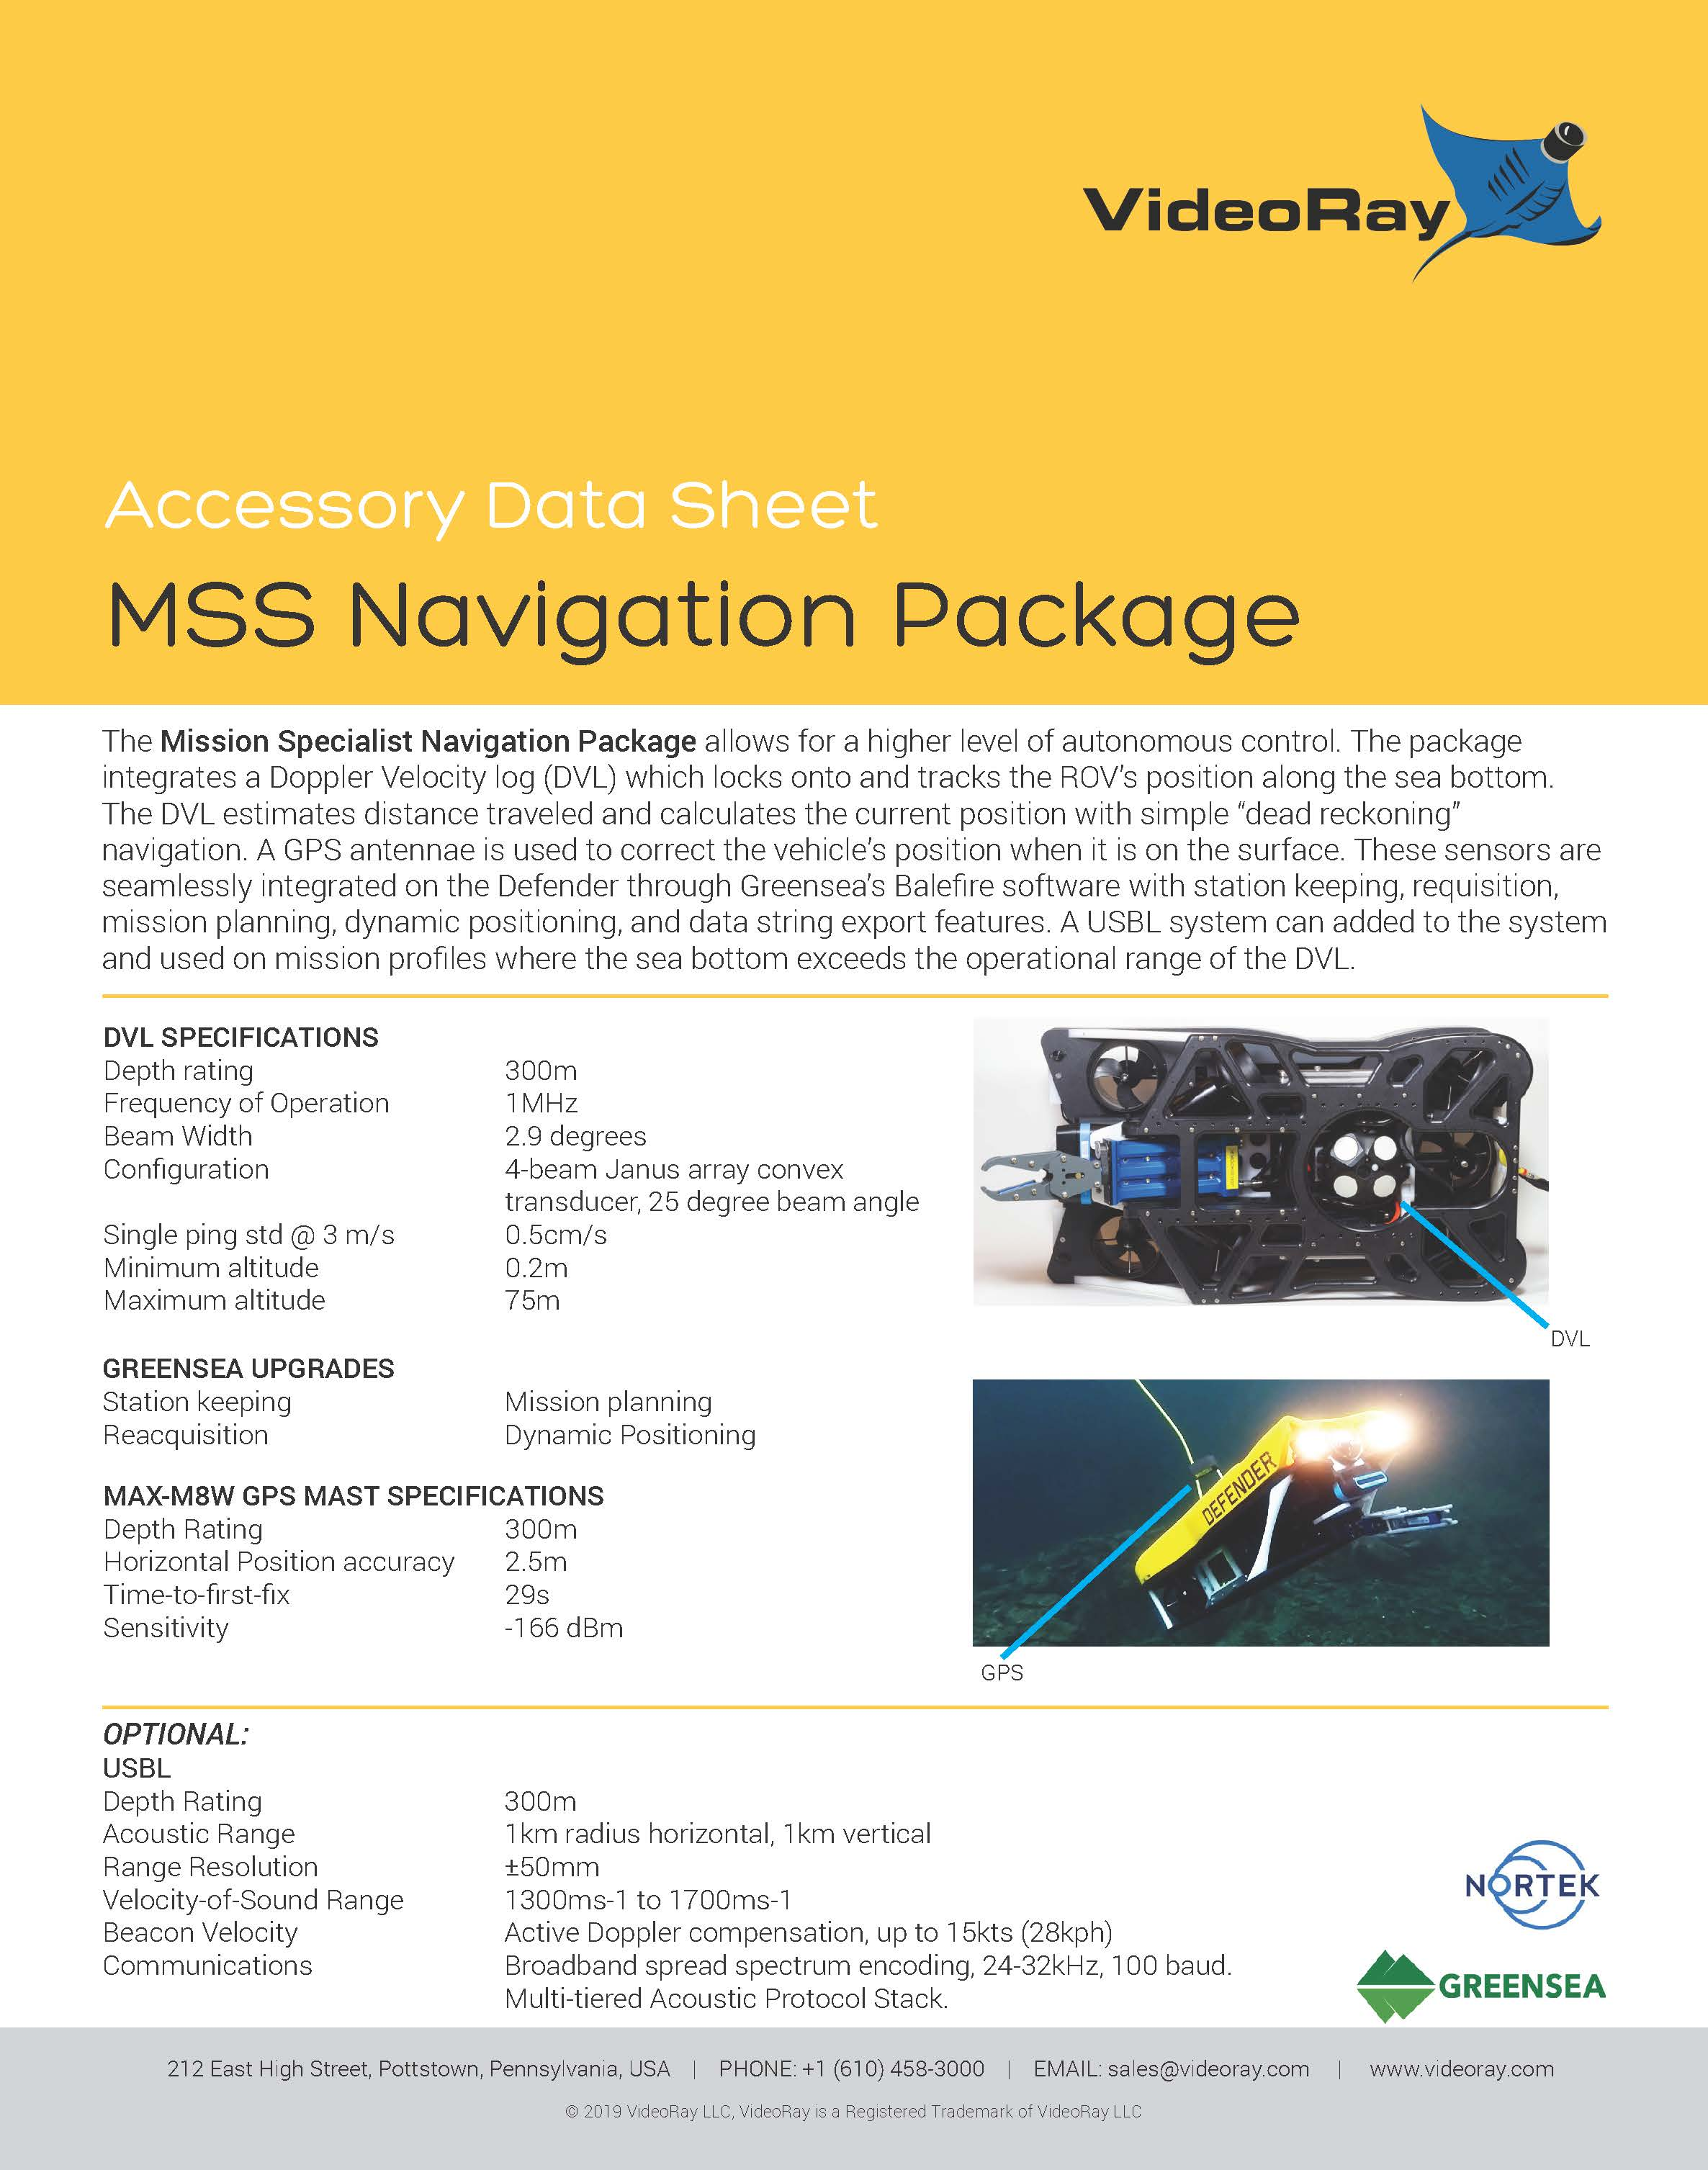 2019 MSS NAVIGATION PACKAGE